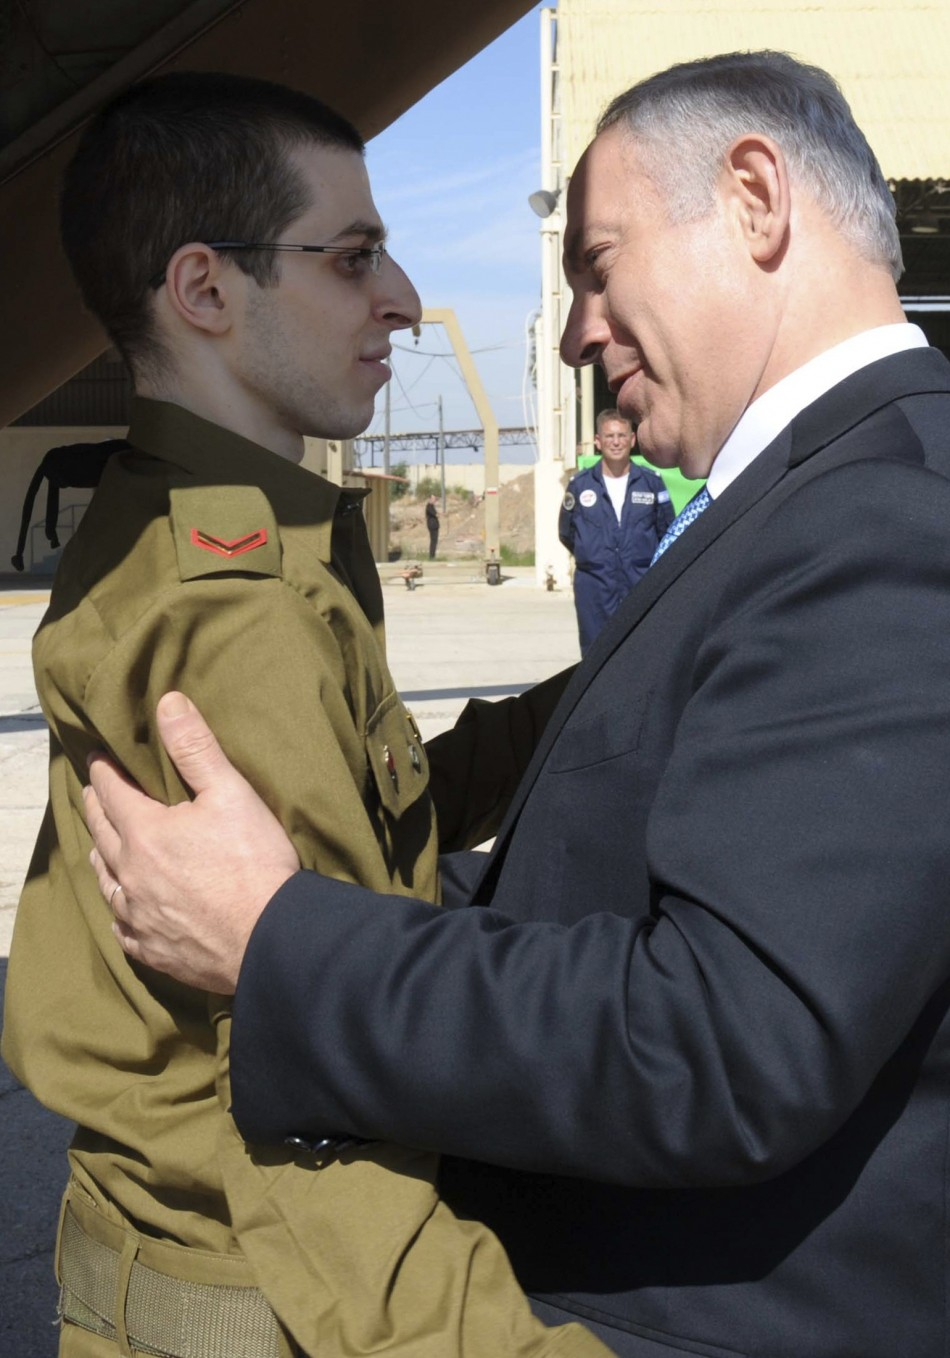 Does Netanyahu Want 600,000 Gilad Shalits?